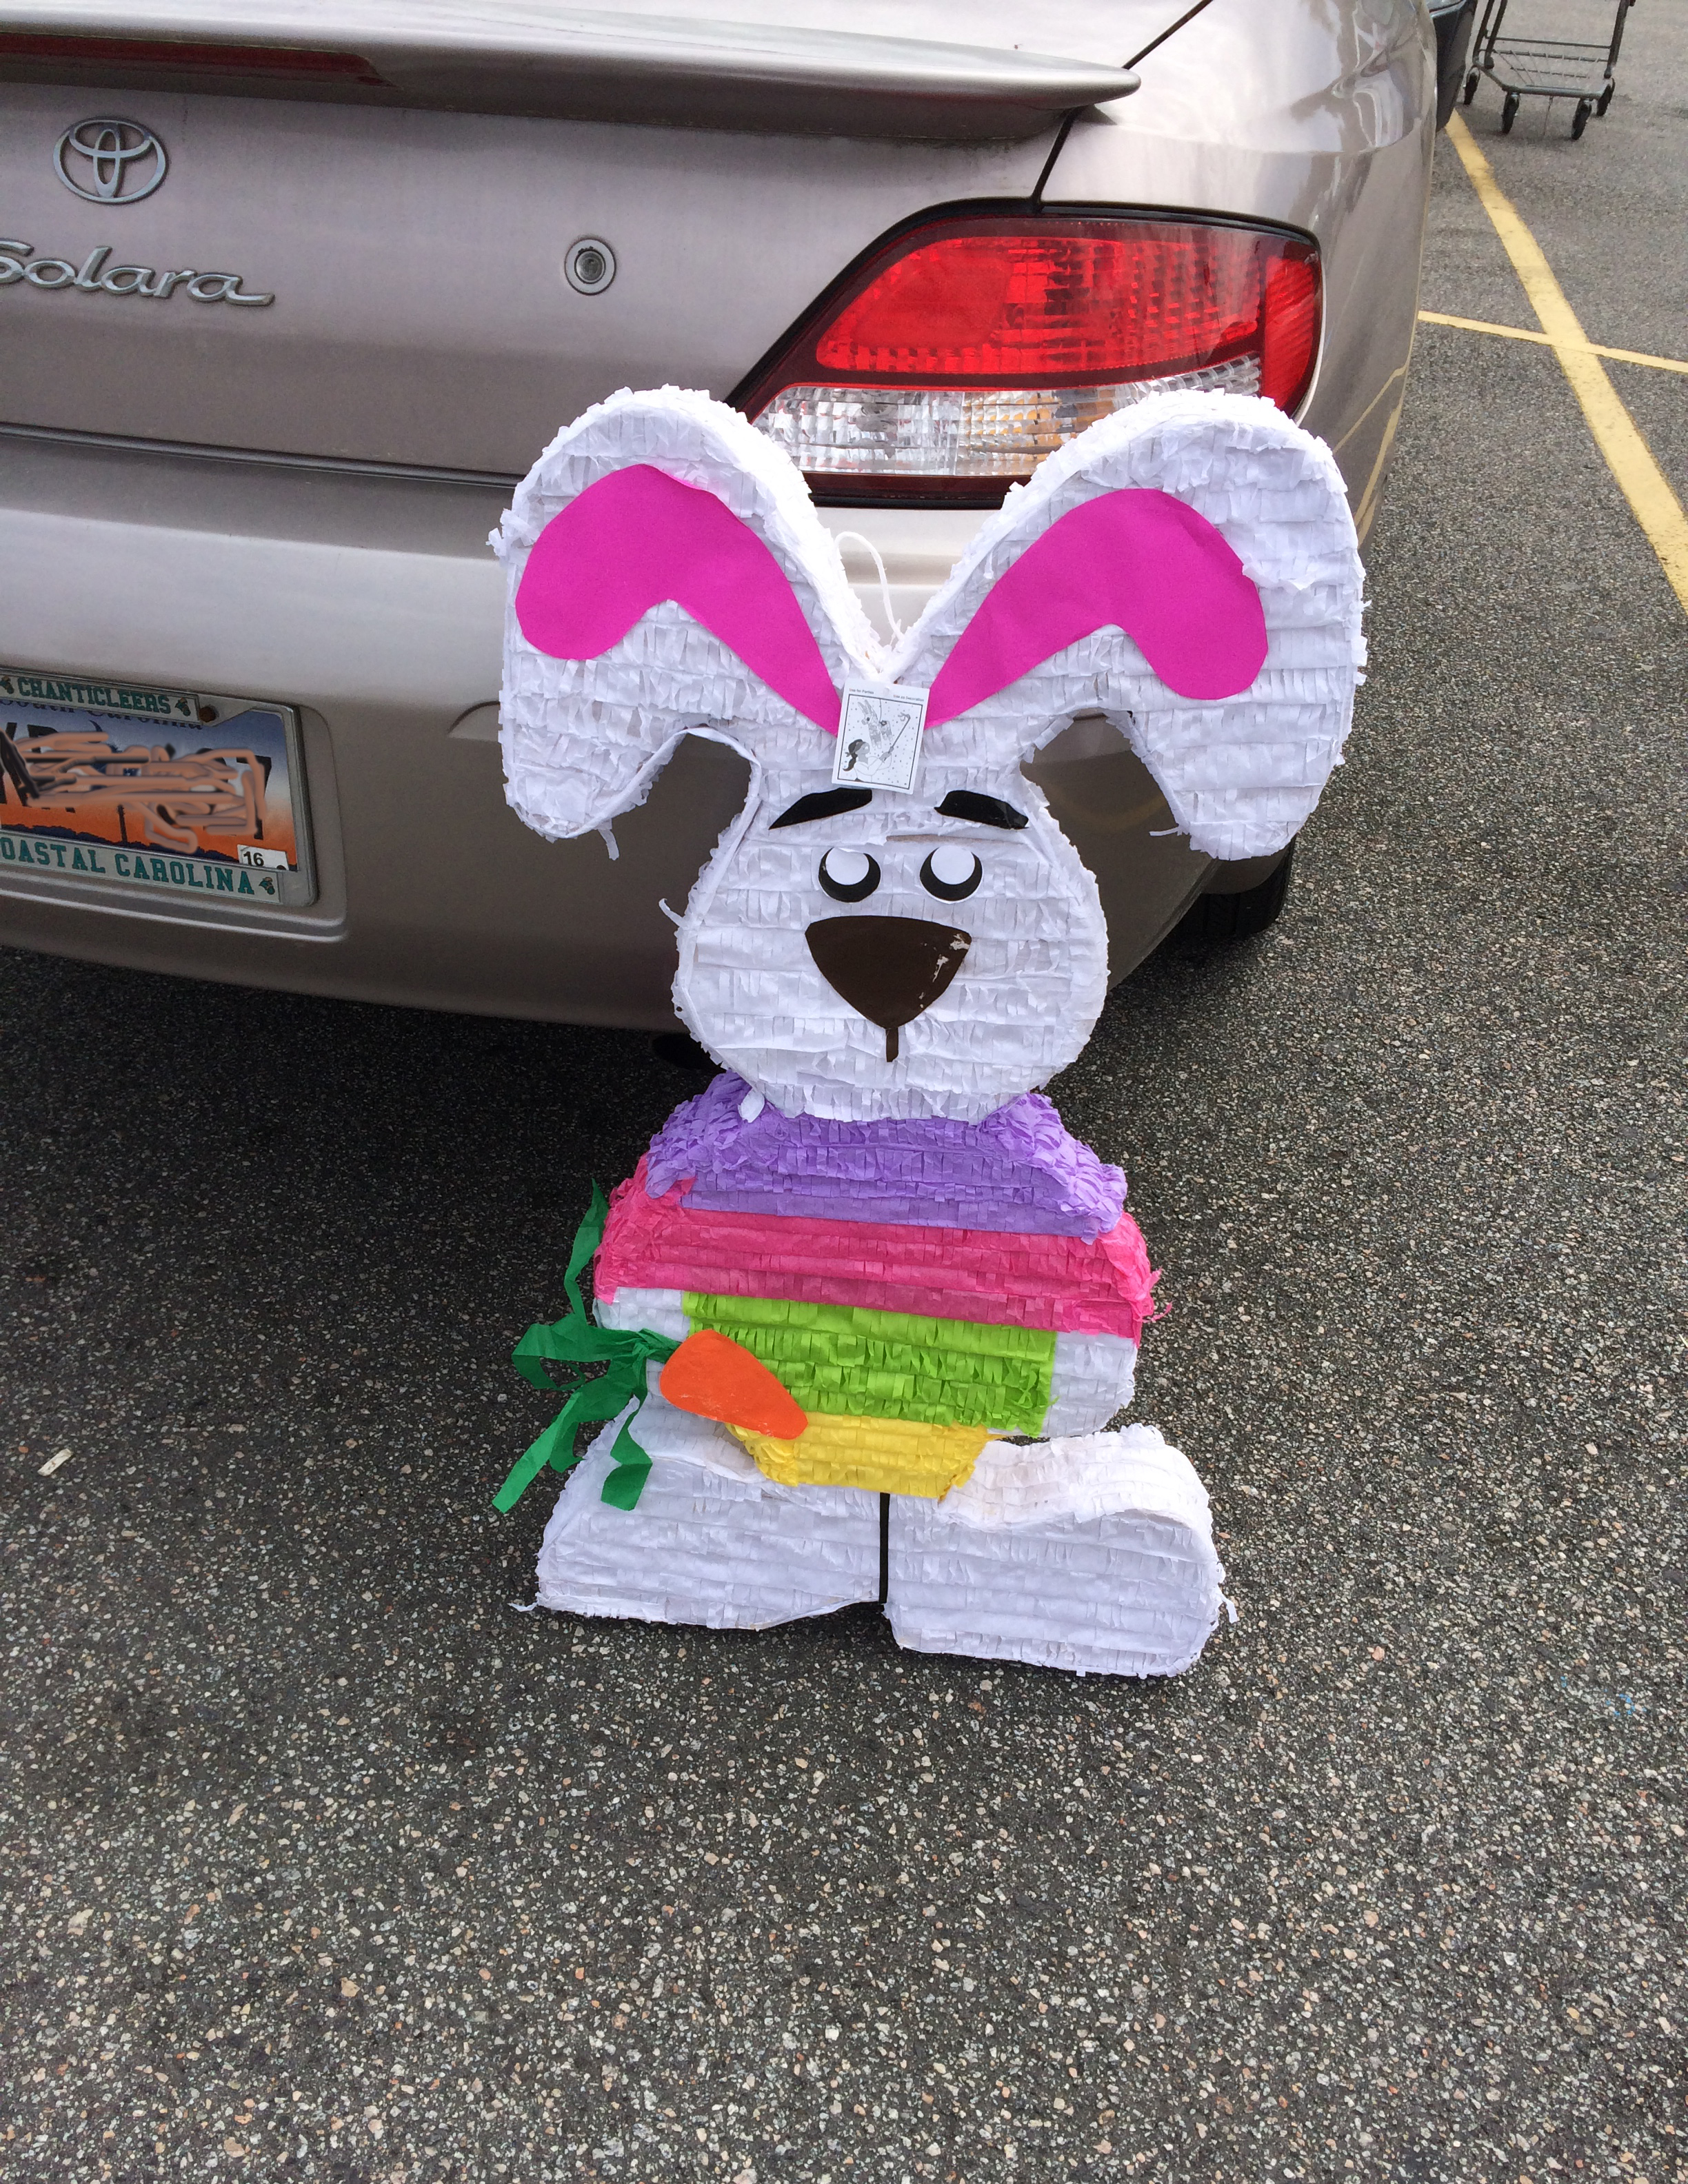 The bunny piñata I purchased up against my car.